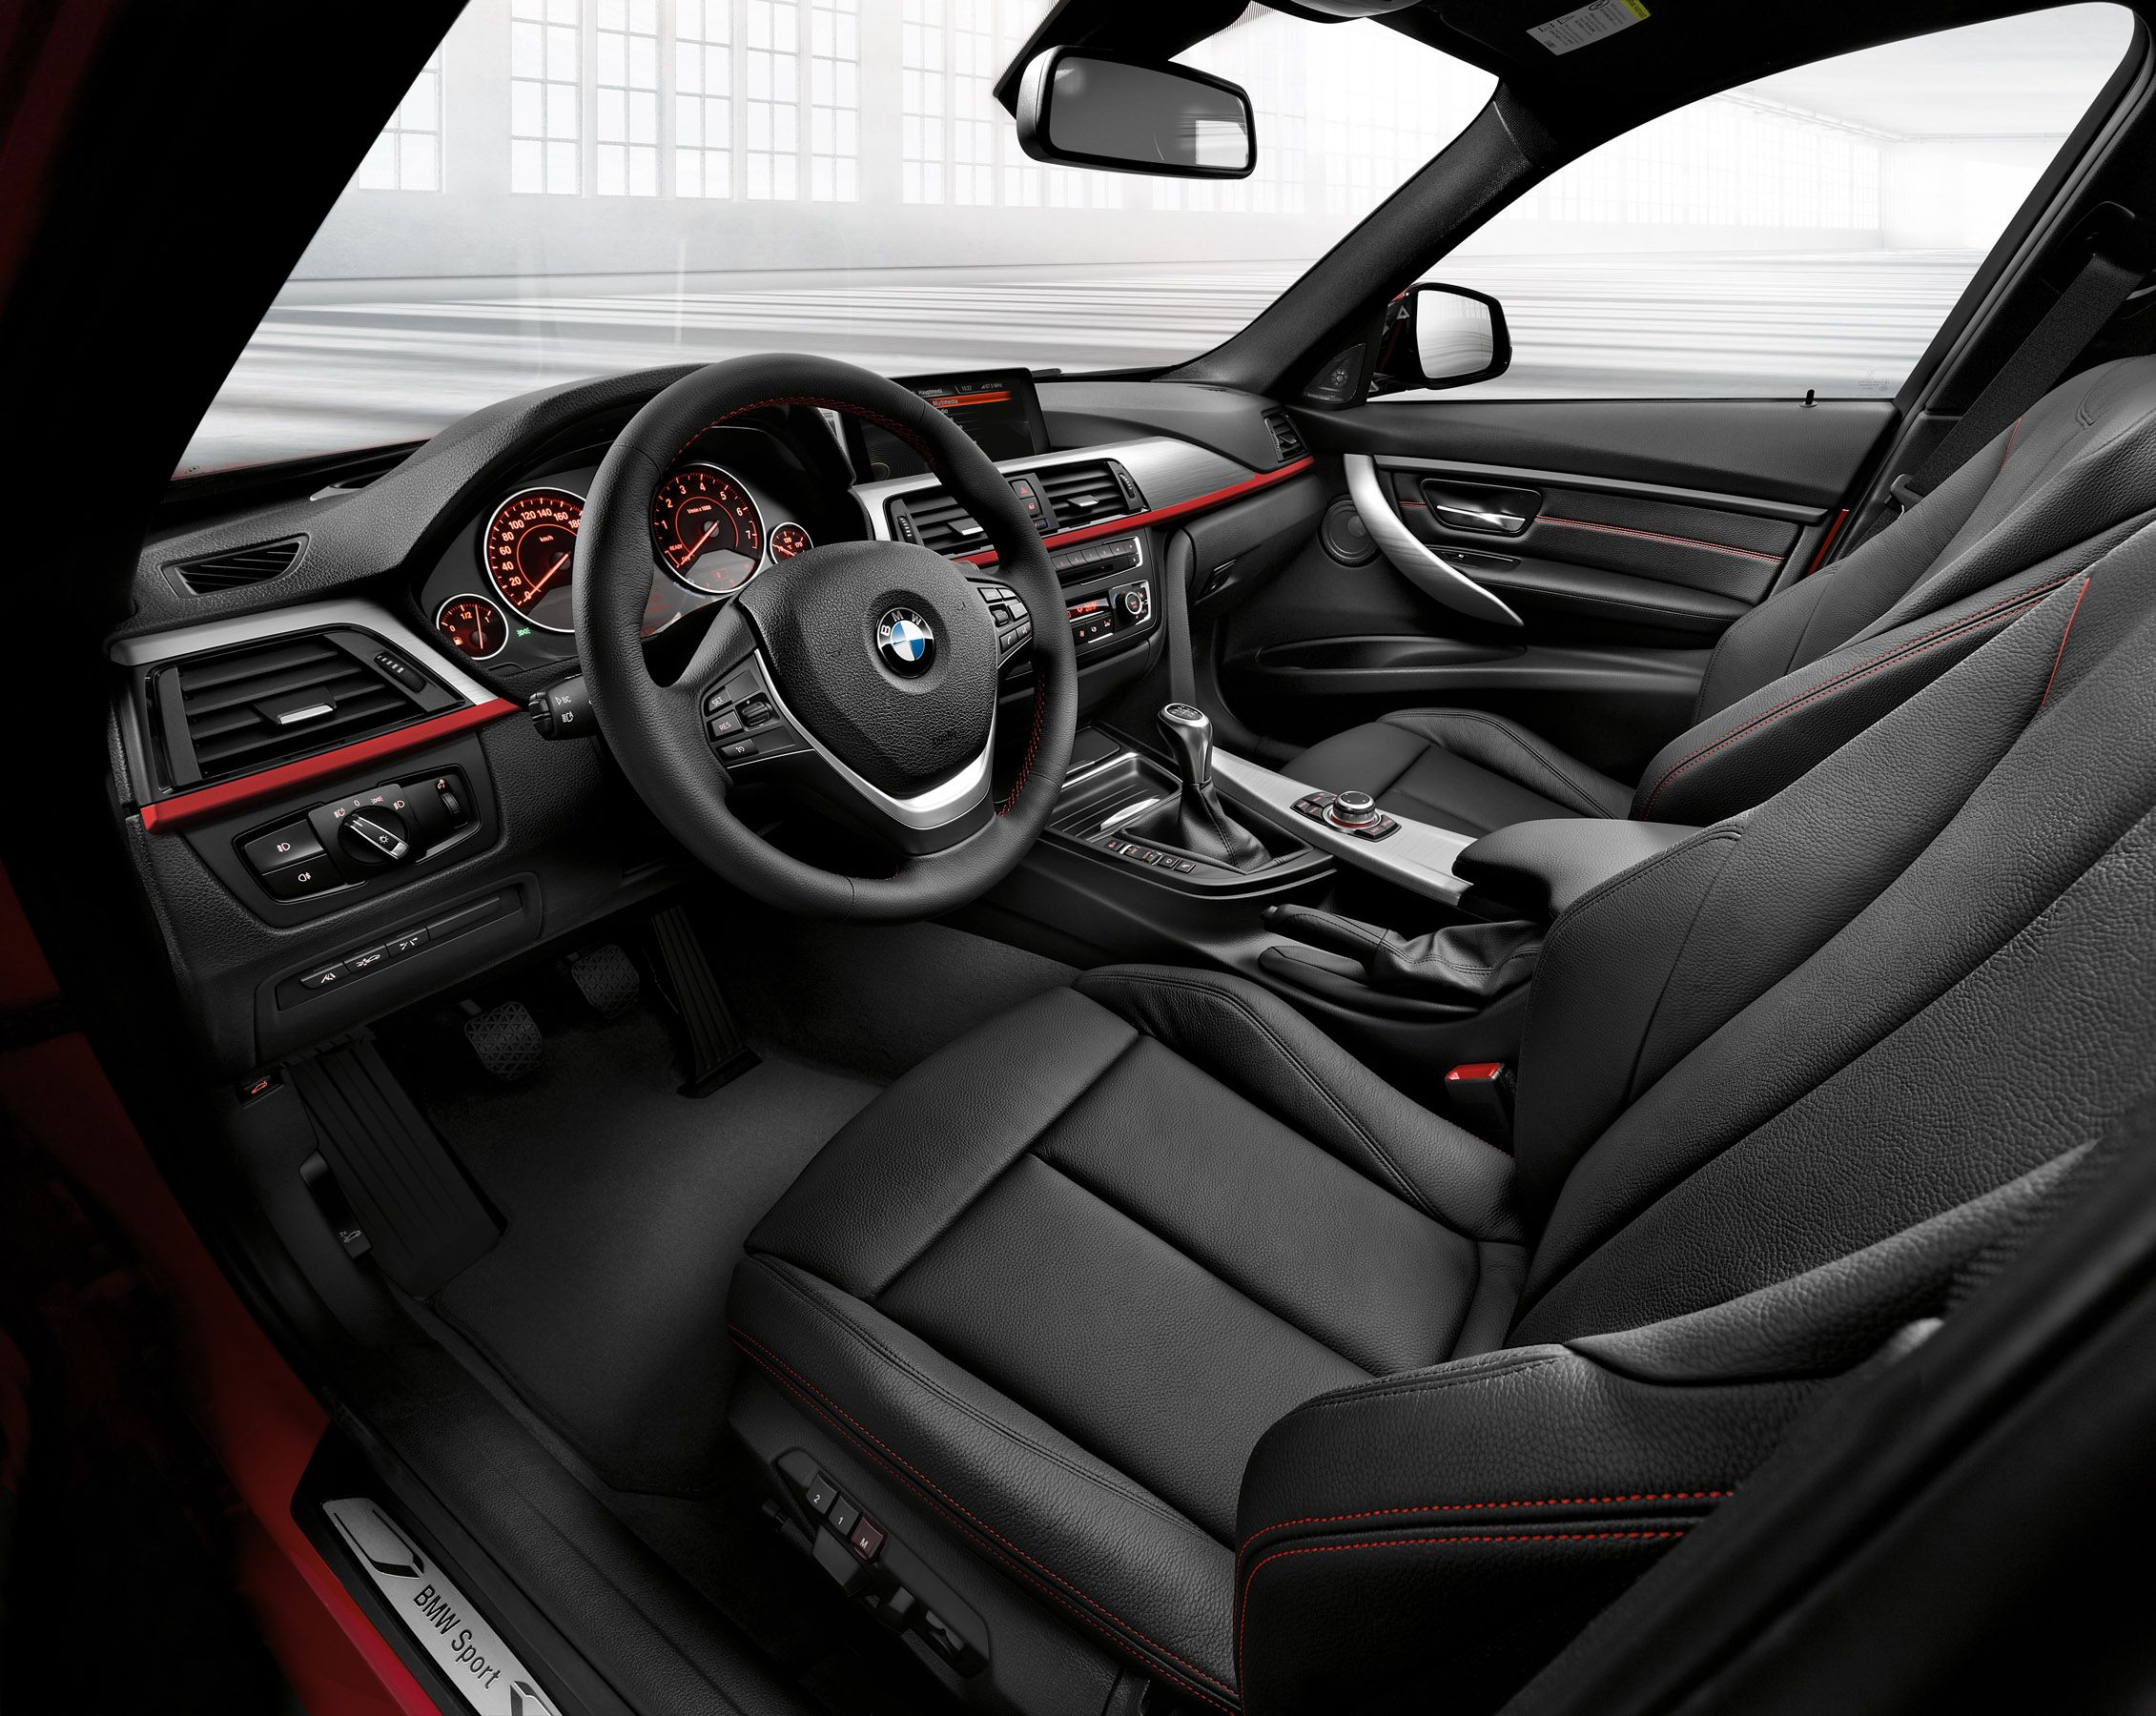 Image For Bmw Sports Wagon Black Dakota Sport Line Interior